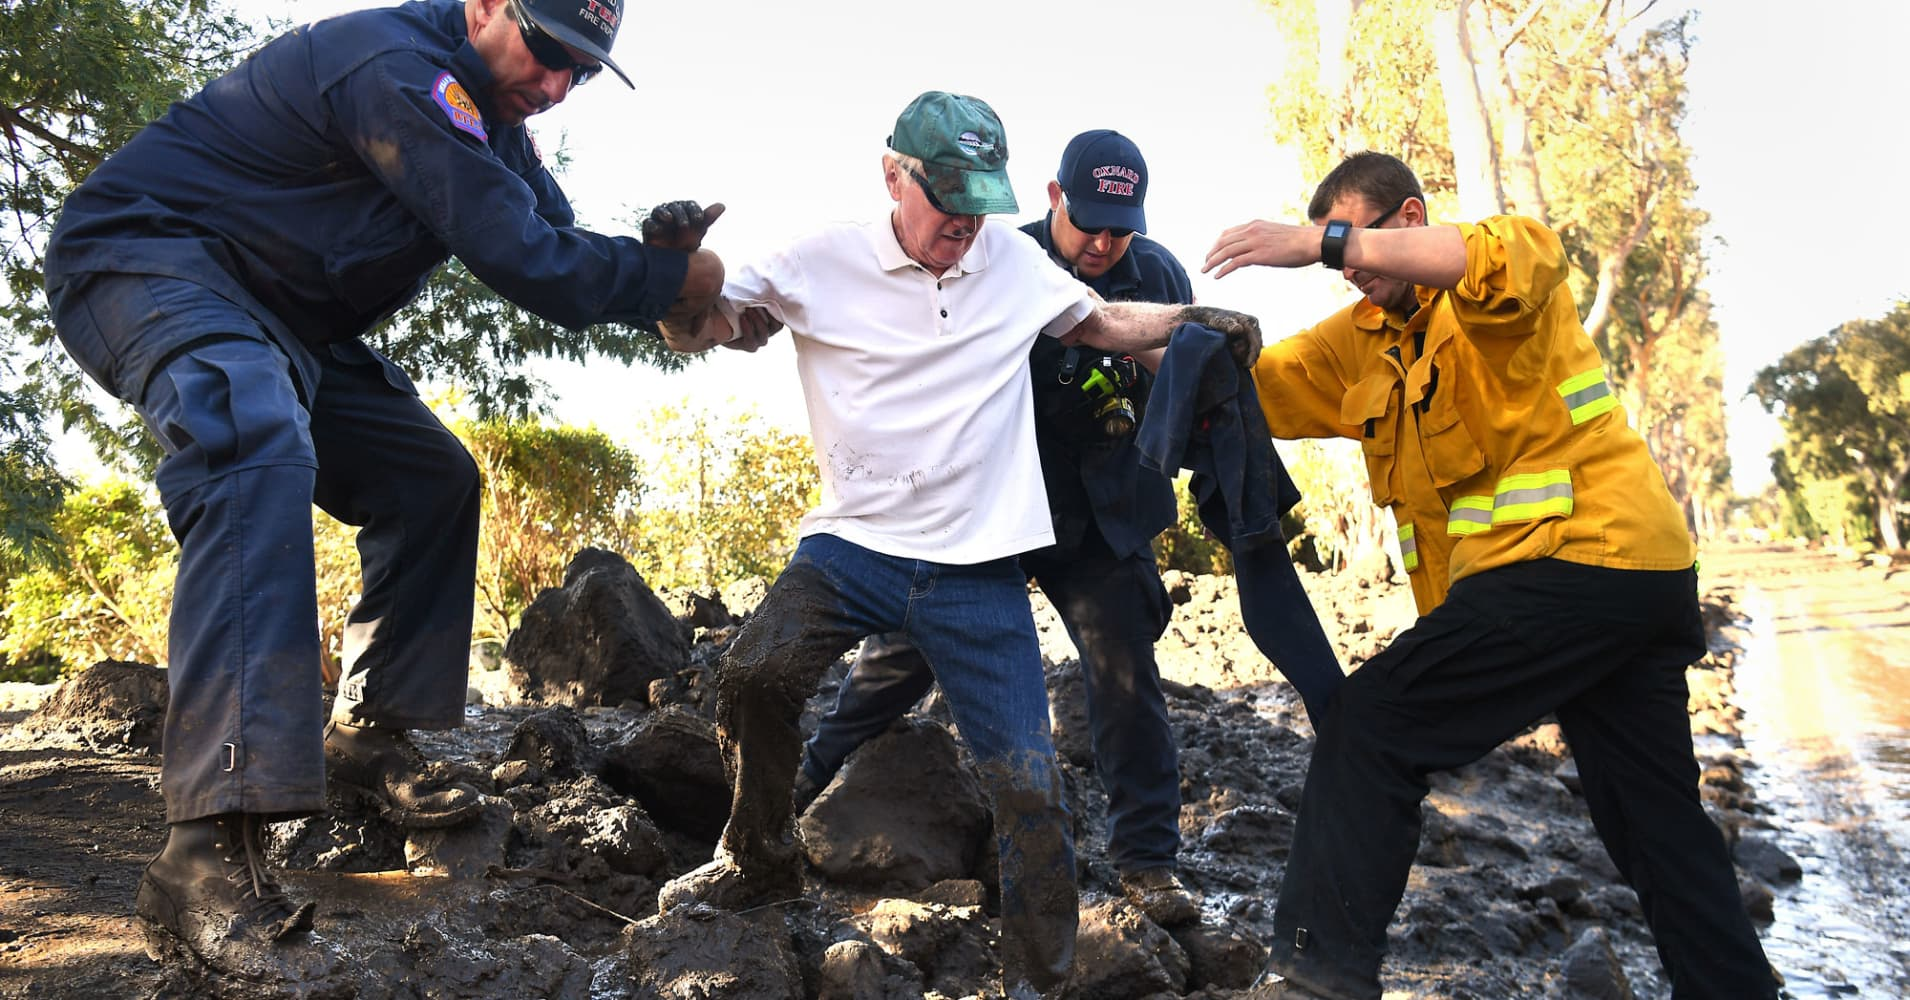 Goleta business volunteers to clean mud off rescue vehicles